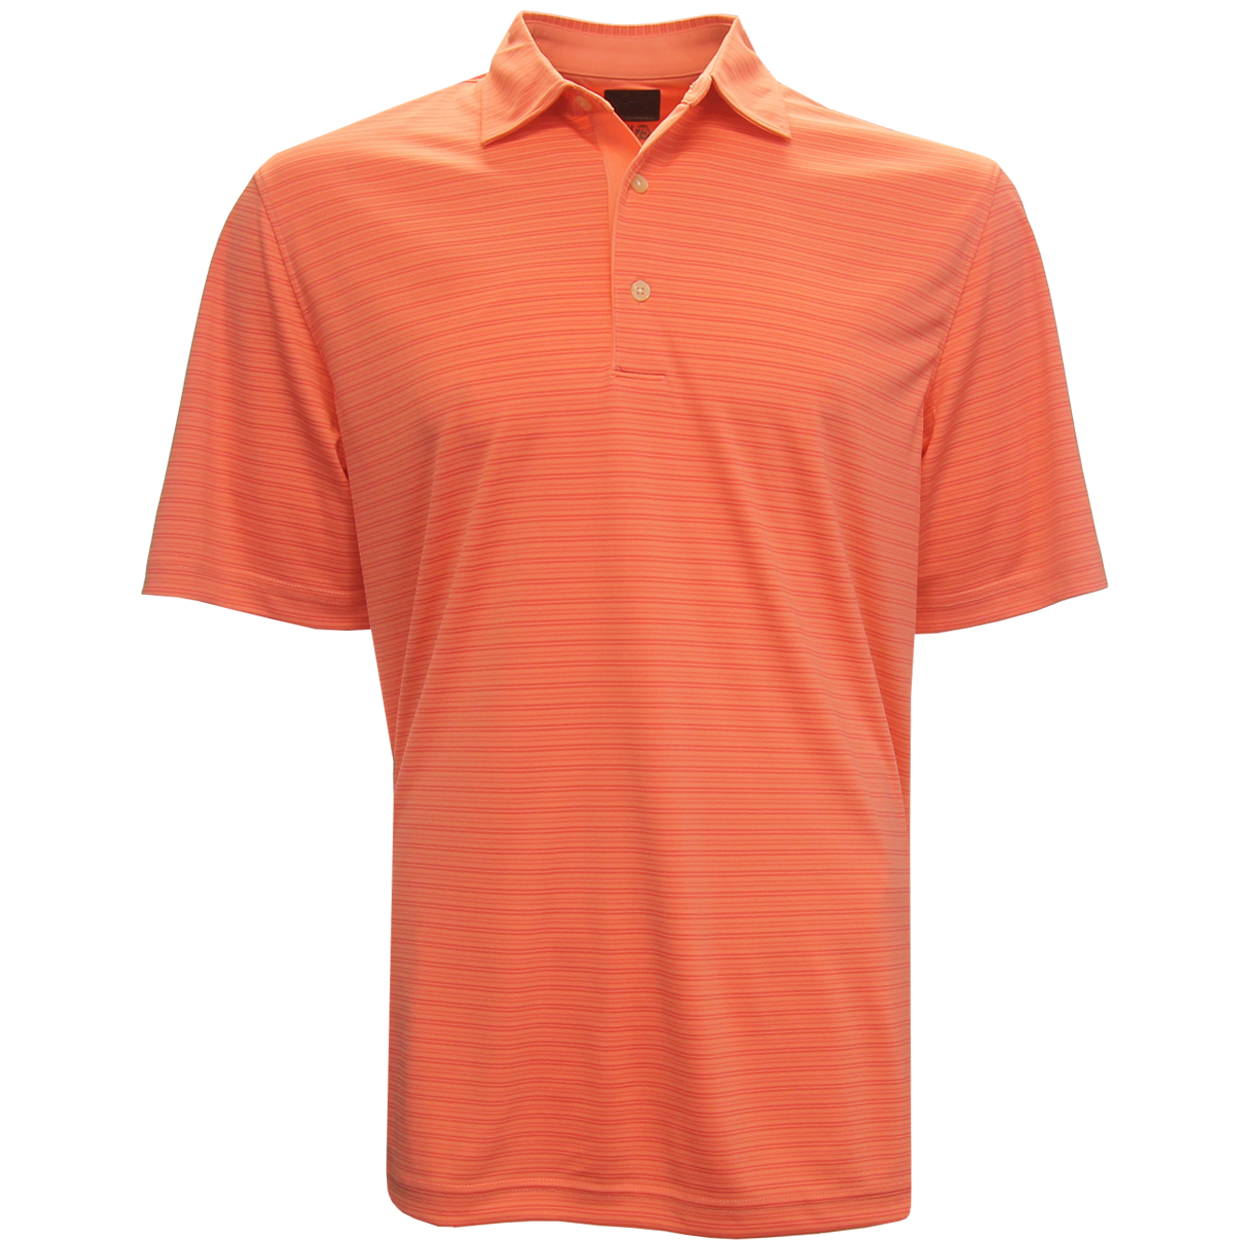 Greg Norman Tonal Stripe Polo Shirt *Closeout*